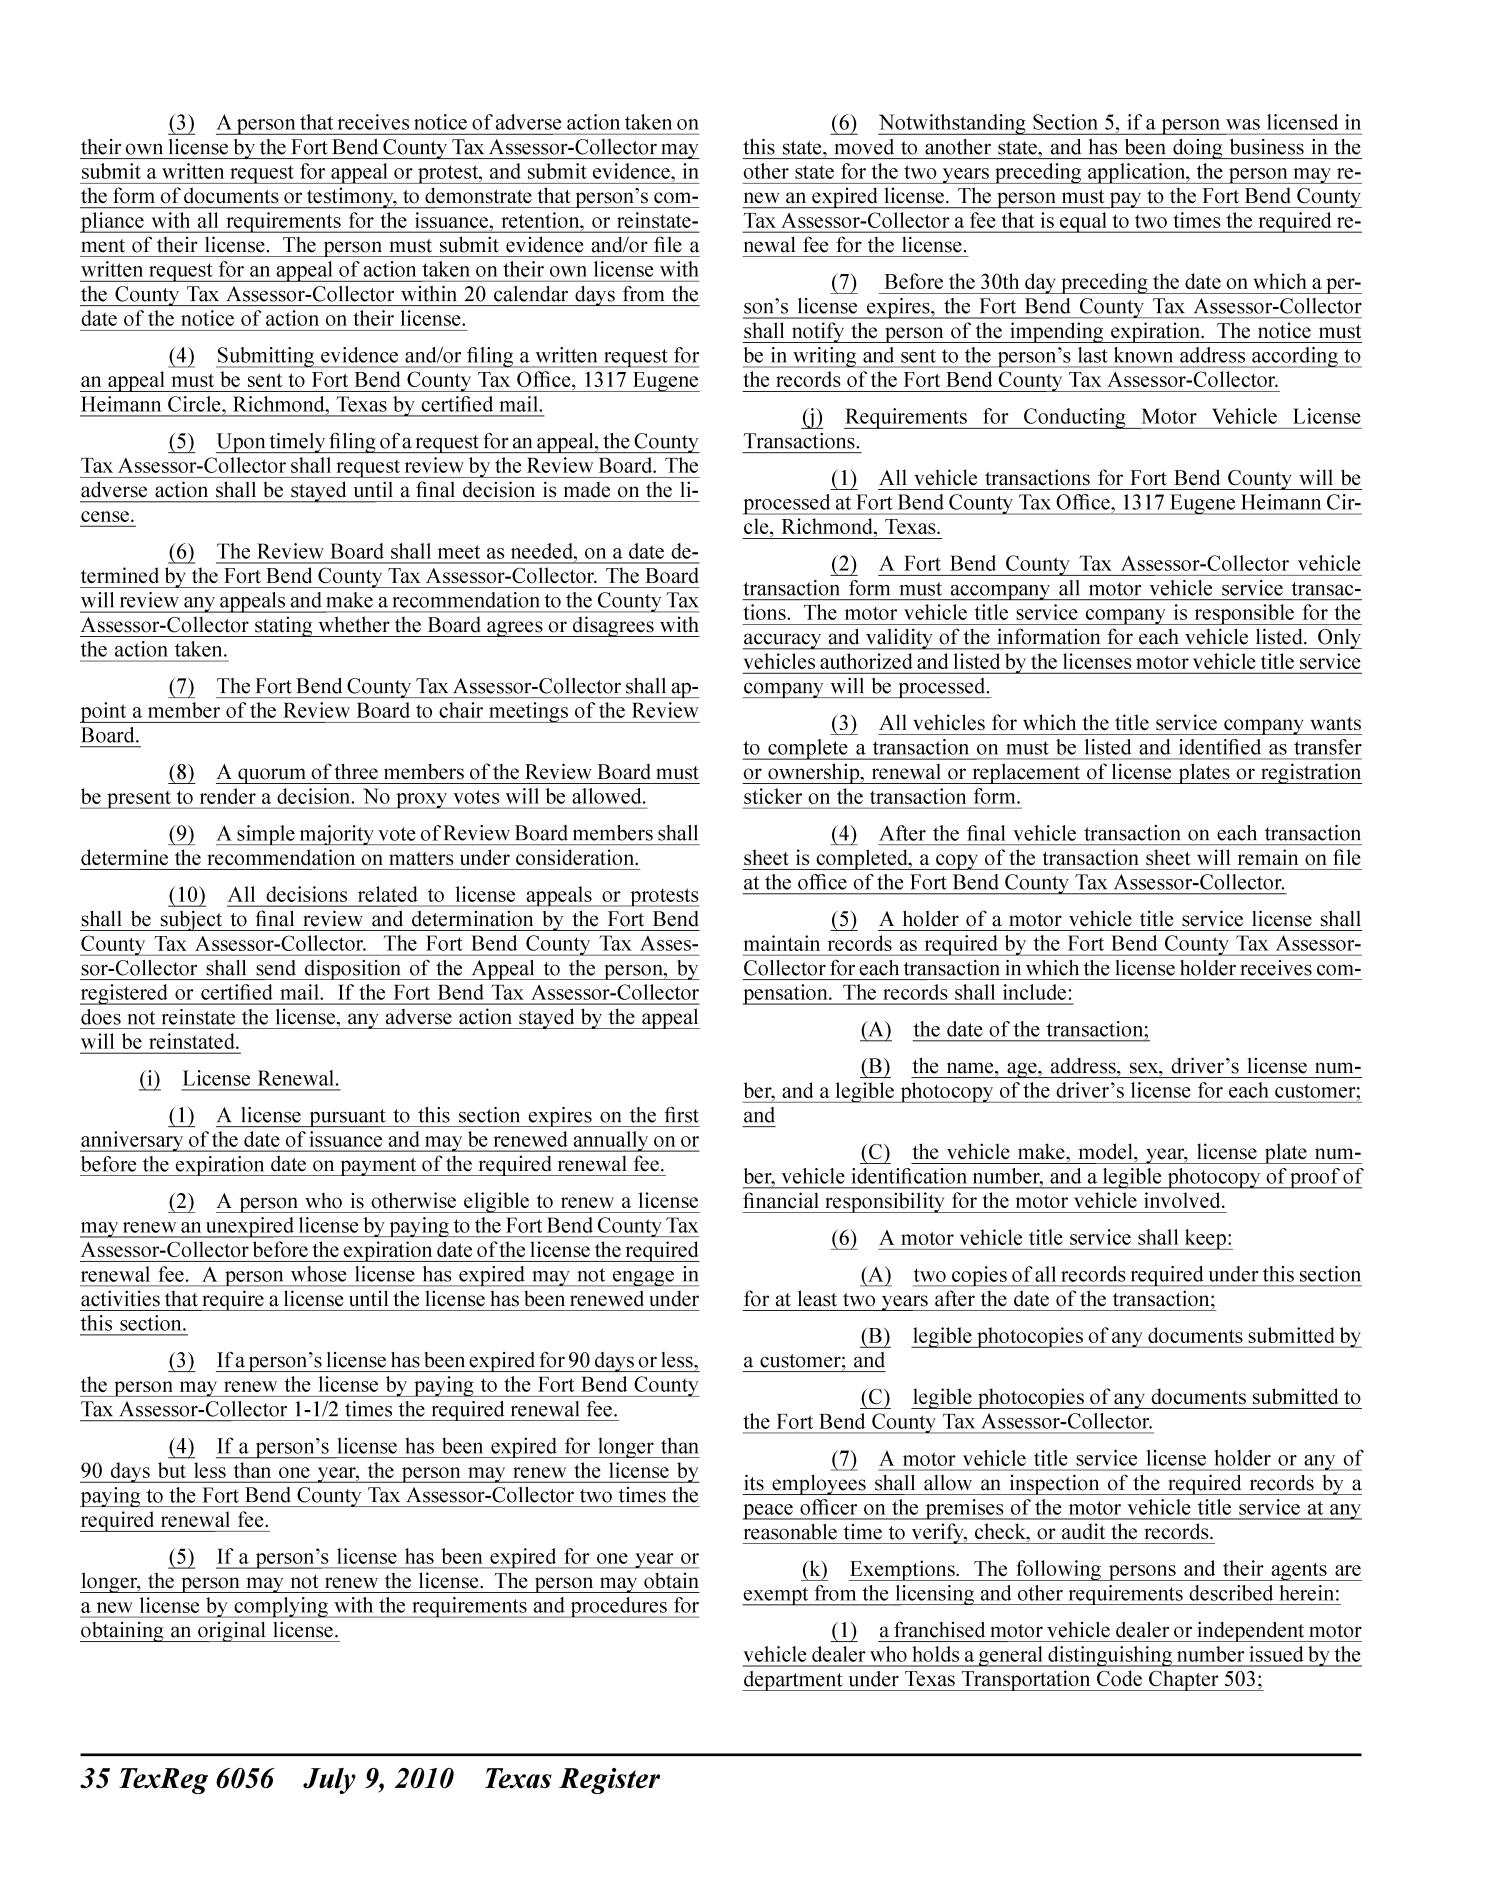 Texas Register, Volume 35, Number 28, Pages 5981-6132, July 9, 2010 - Page 6,056 - The Portal to Texas History